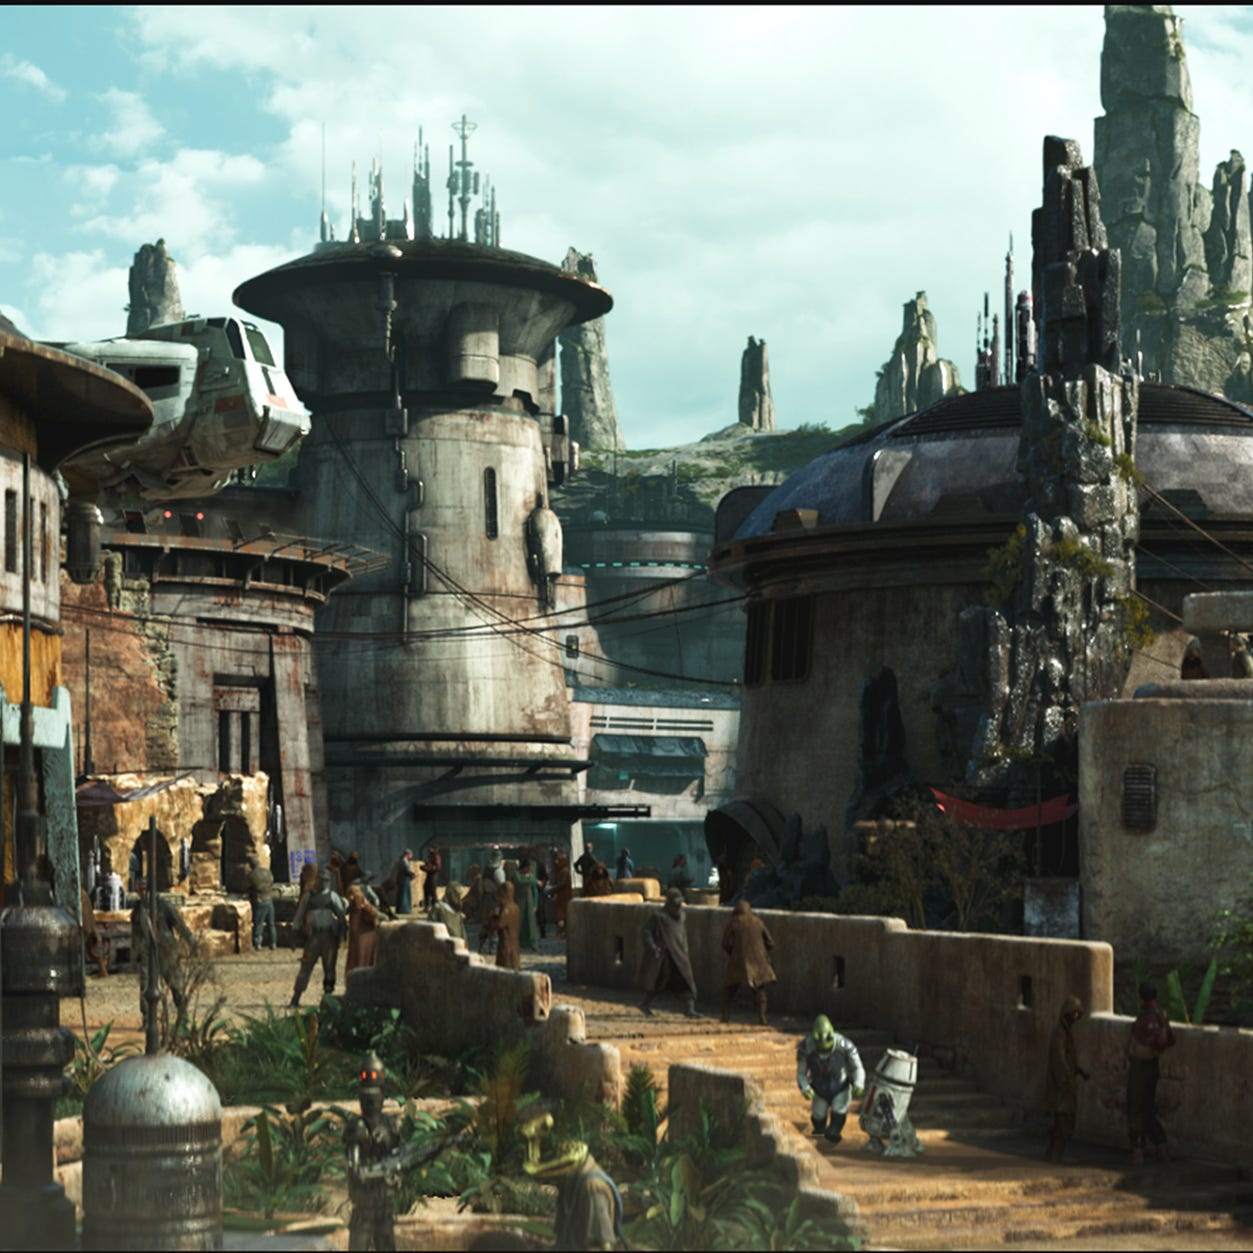 Want to see Star Wars: Galaxy's Edge at Disneyland? Get a reservation.